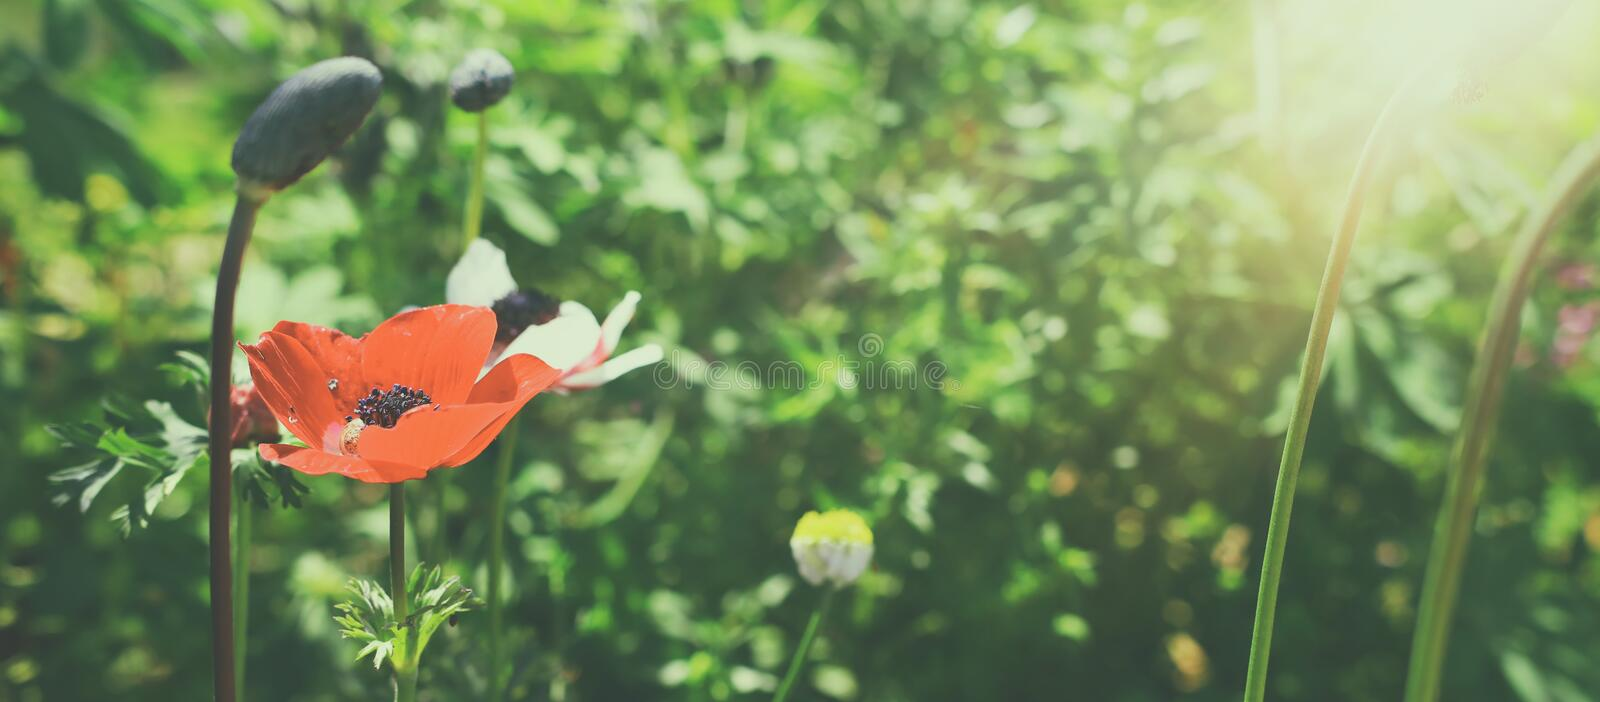 Photo of red poppies in the green field.  stock photo